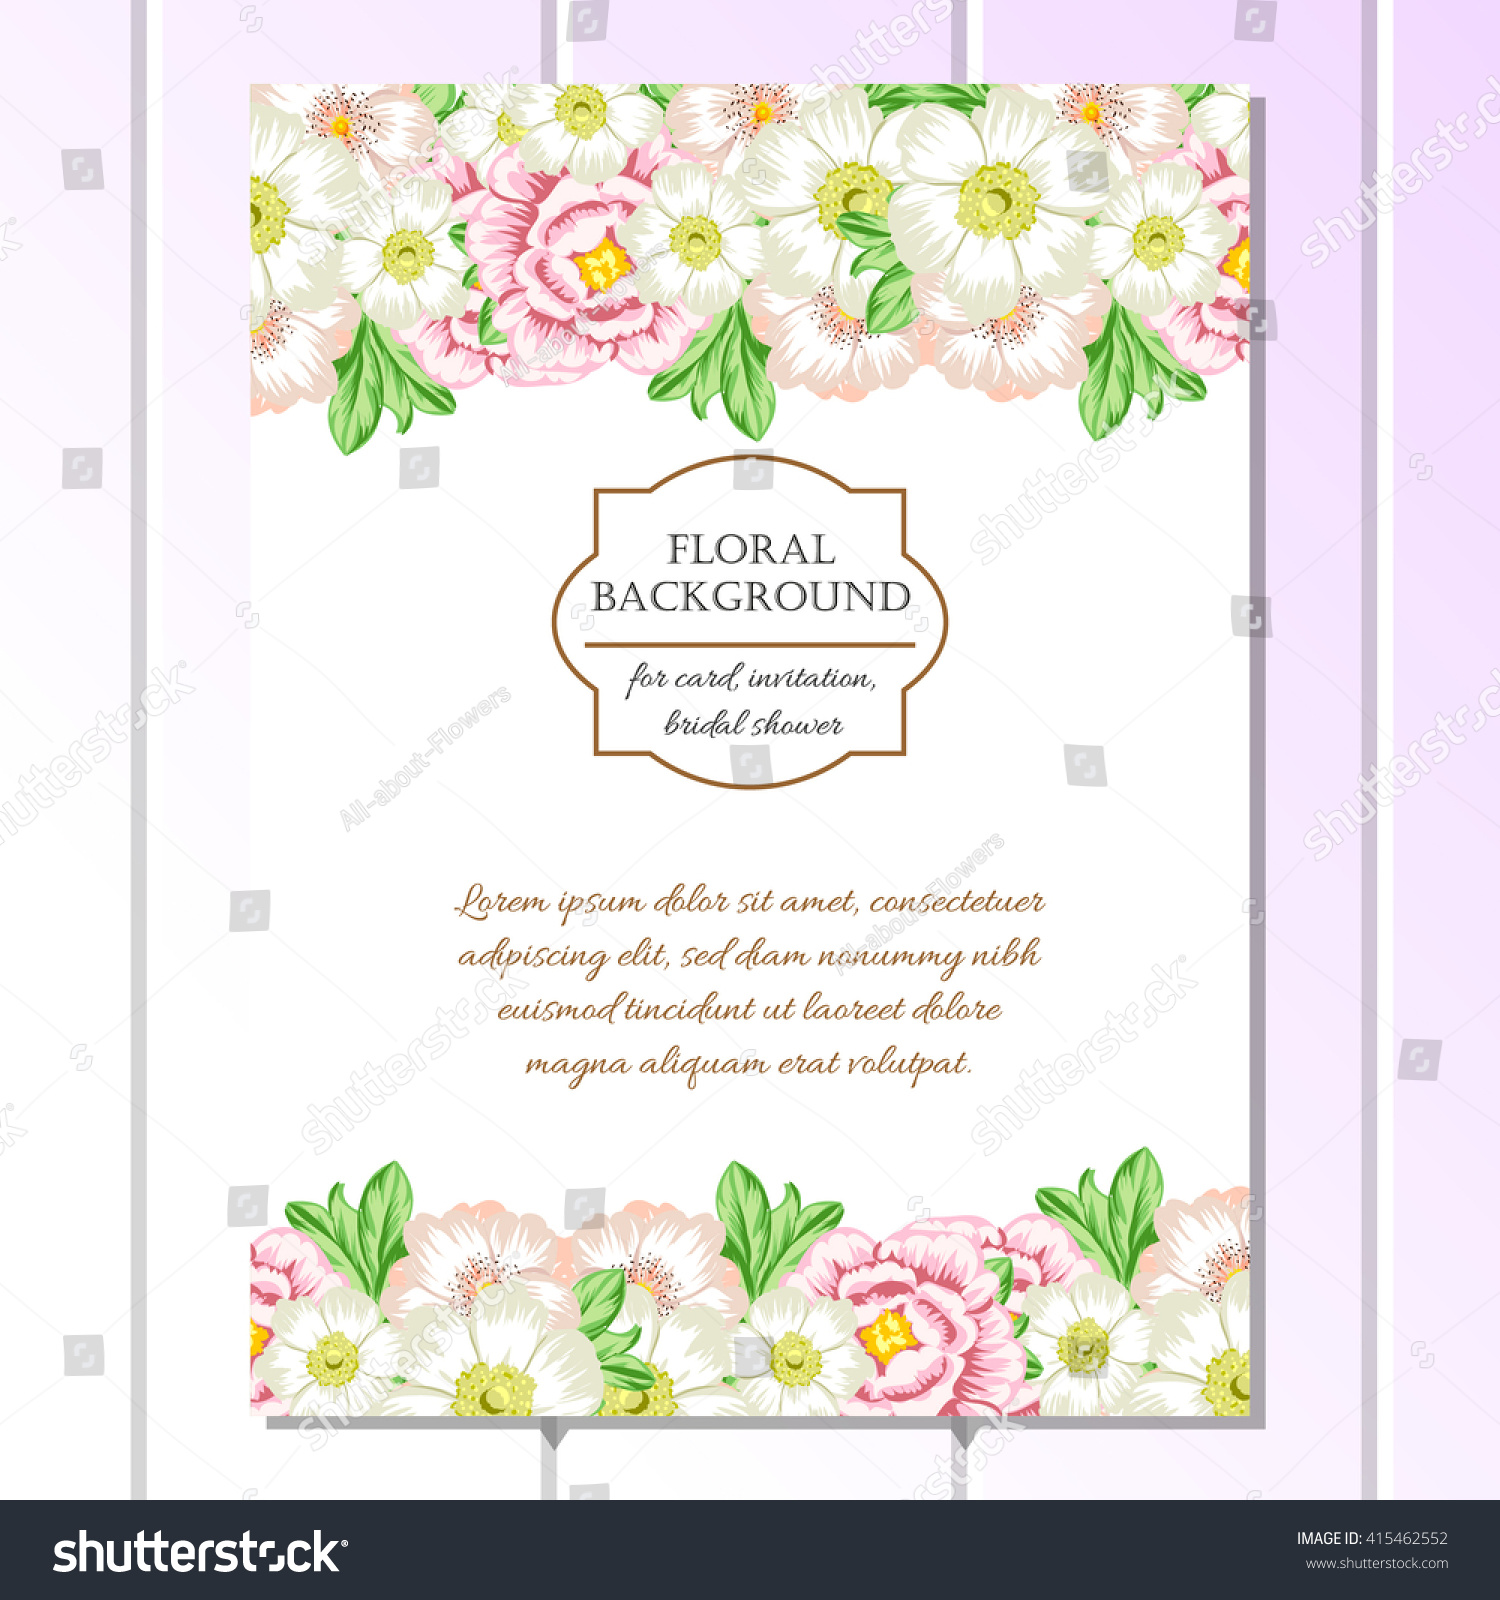 Online Bridal Invitations